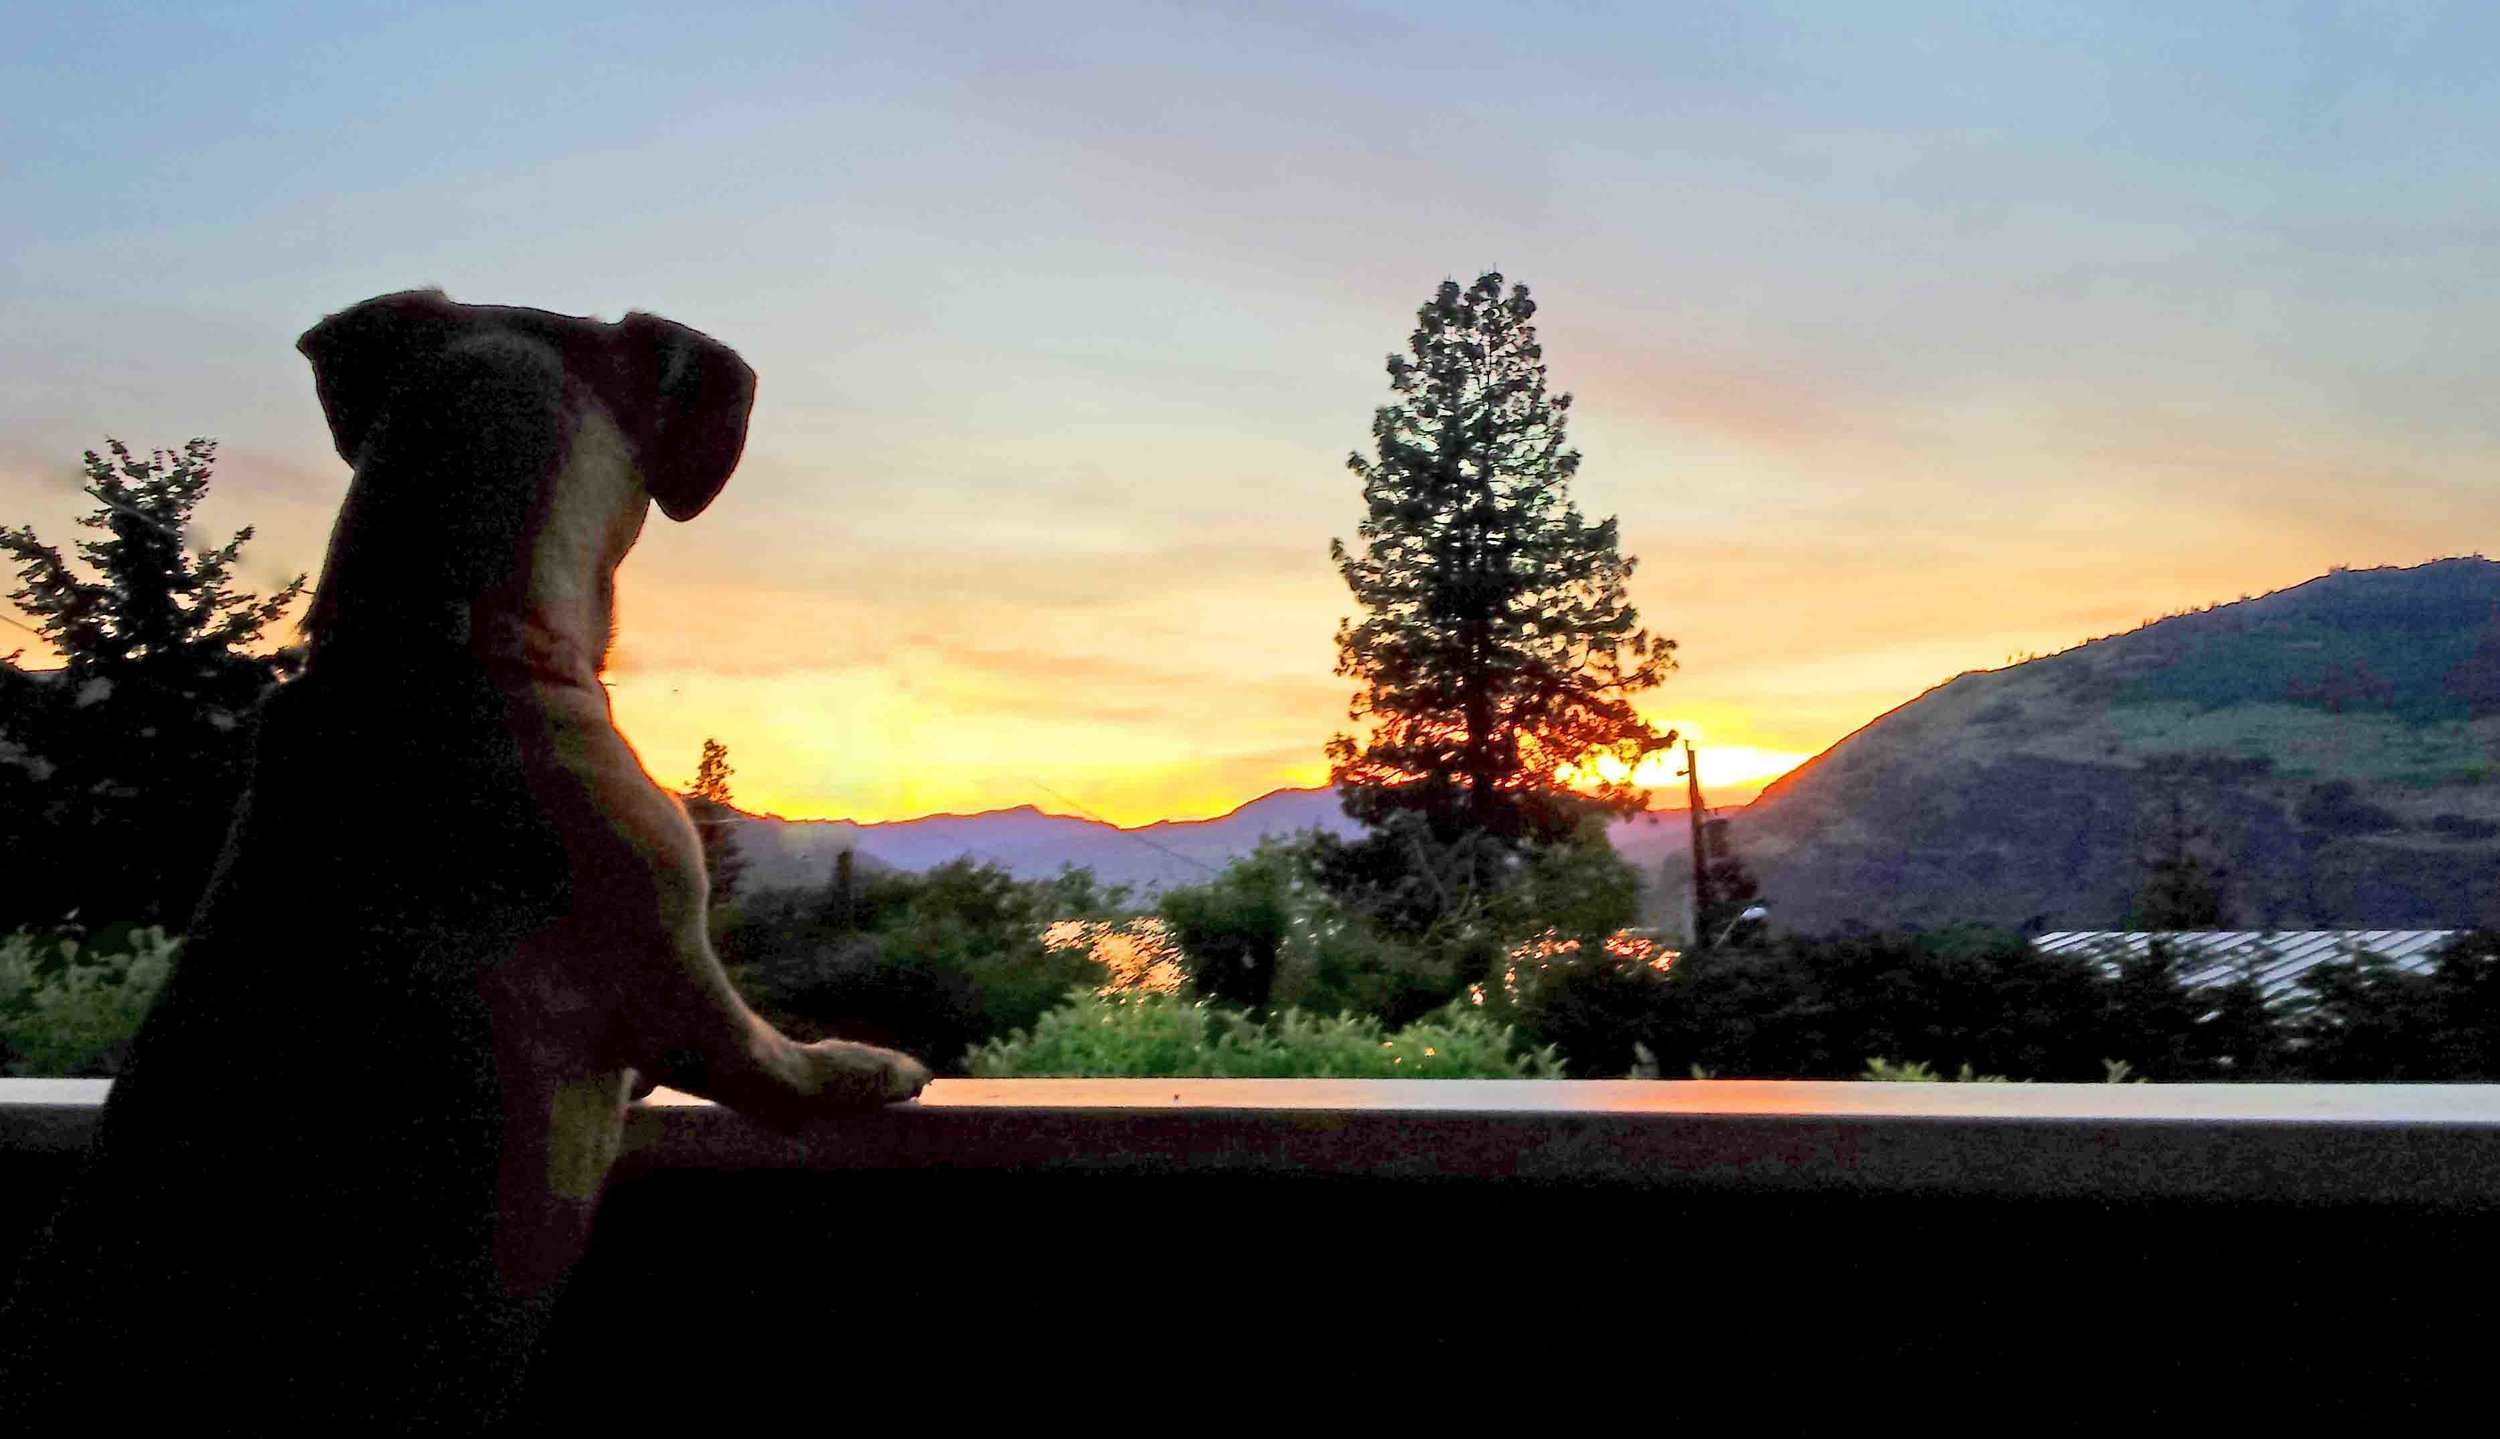 Doodle's deep thoughts over the Columbia River. Photo: (c) Barb Ayers, DogDiary.org